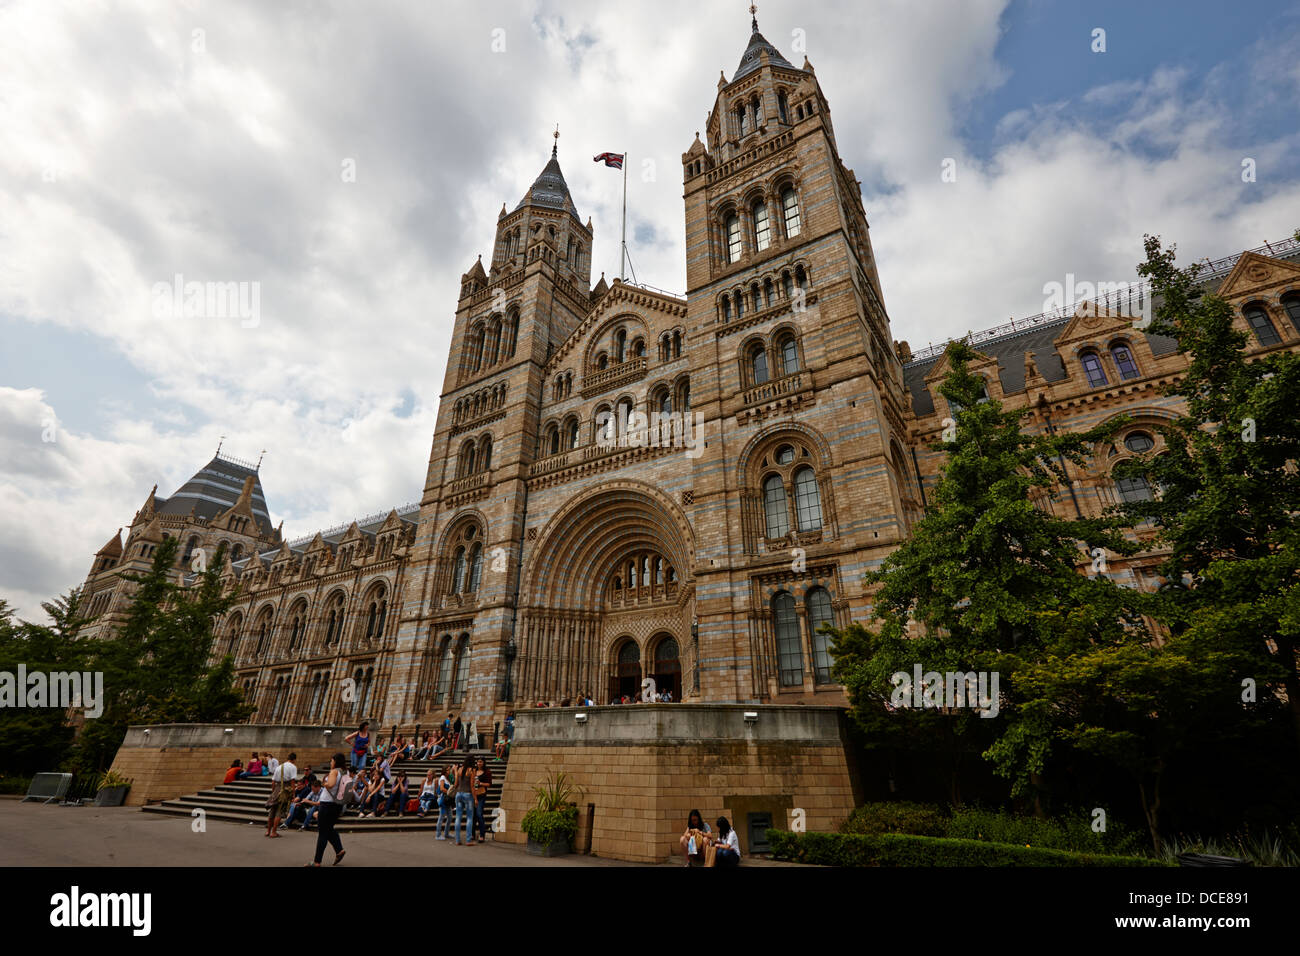 the Natural History Museum London England UK - Stock Image